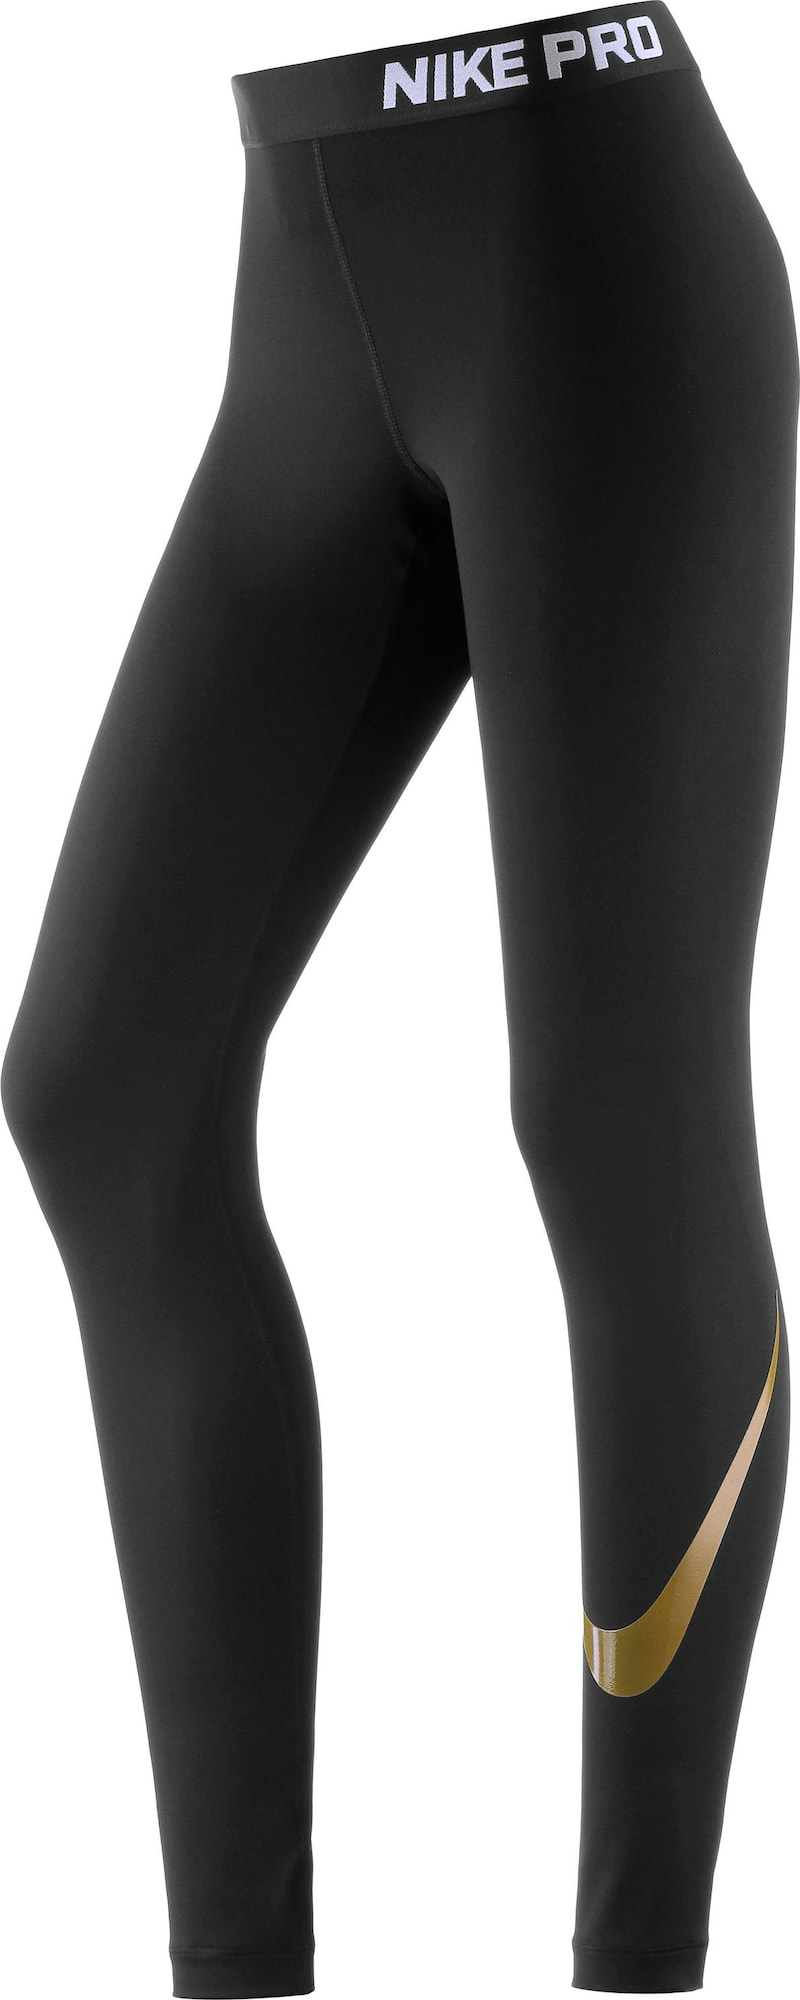 nike 39 pro cool 39 tights damen in schwarz. Black Bedroom Furniture Sets. Home Design Ideas